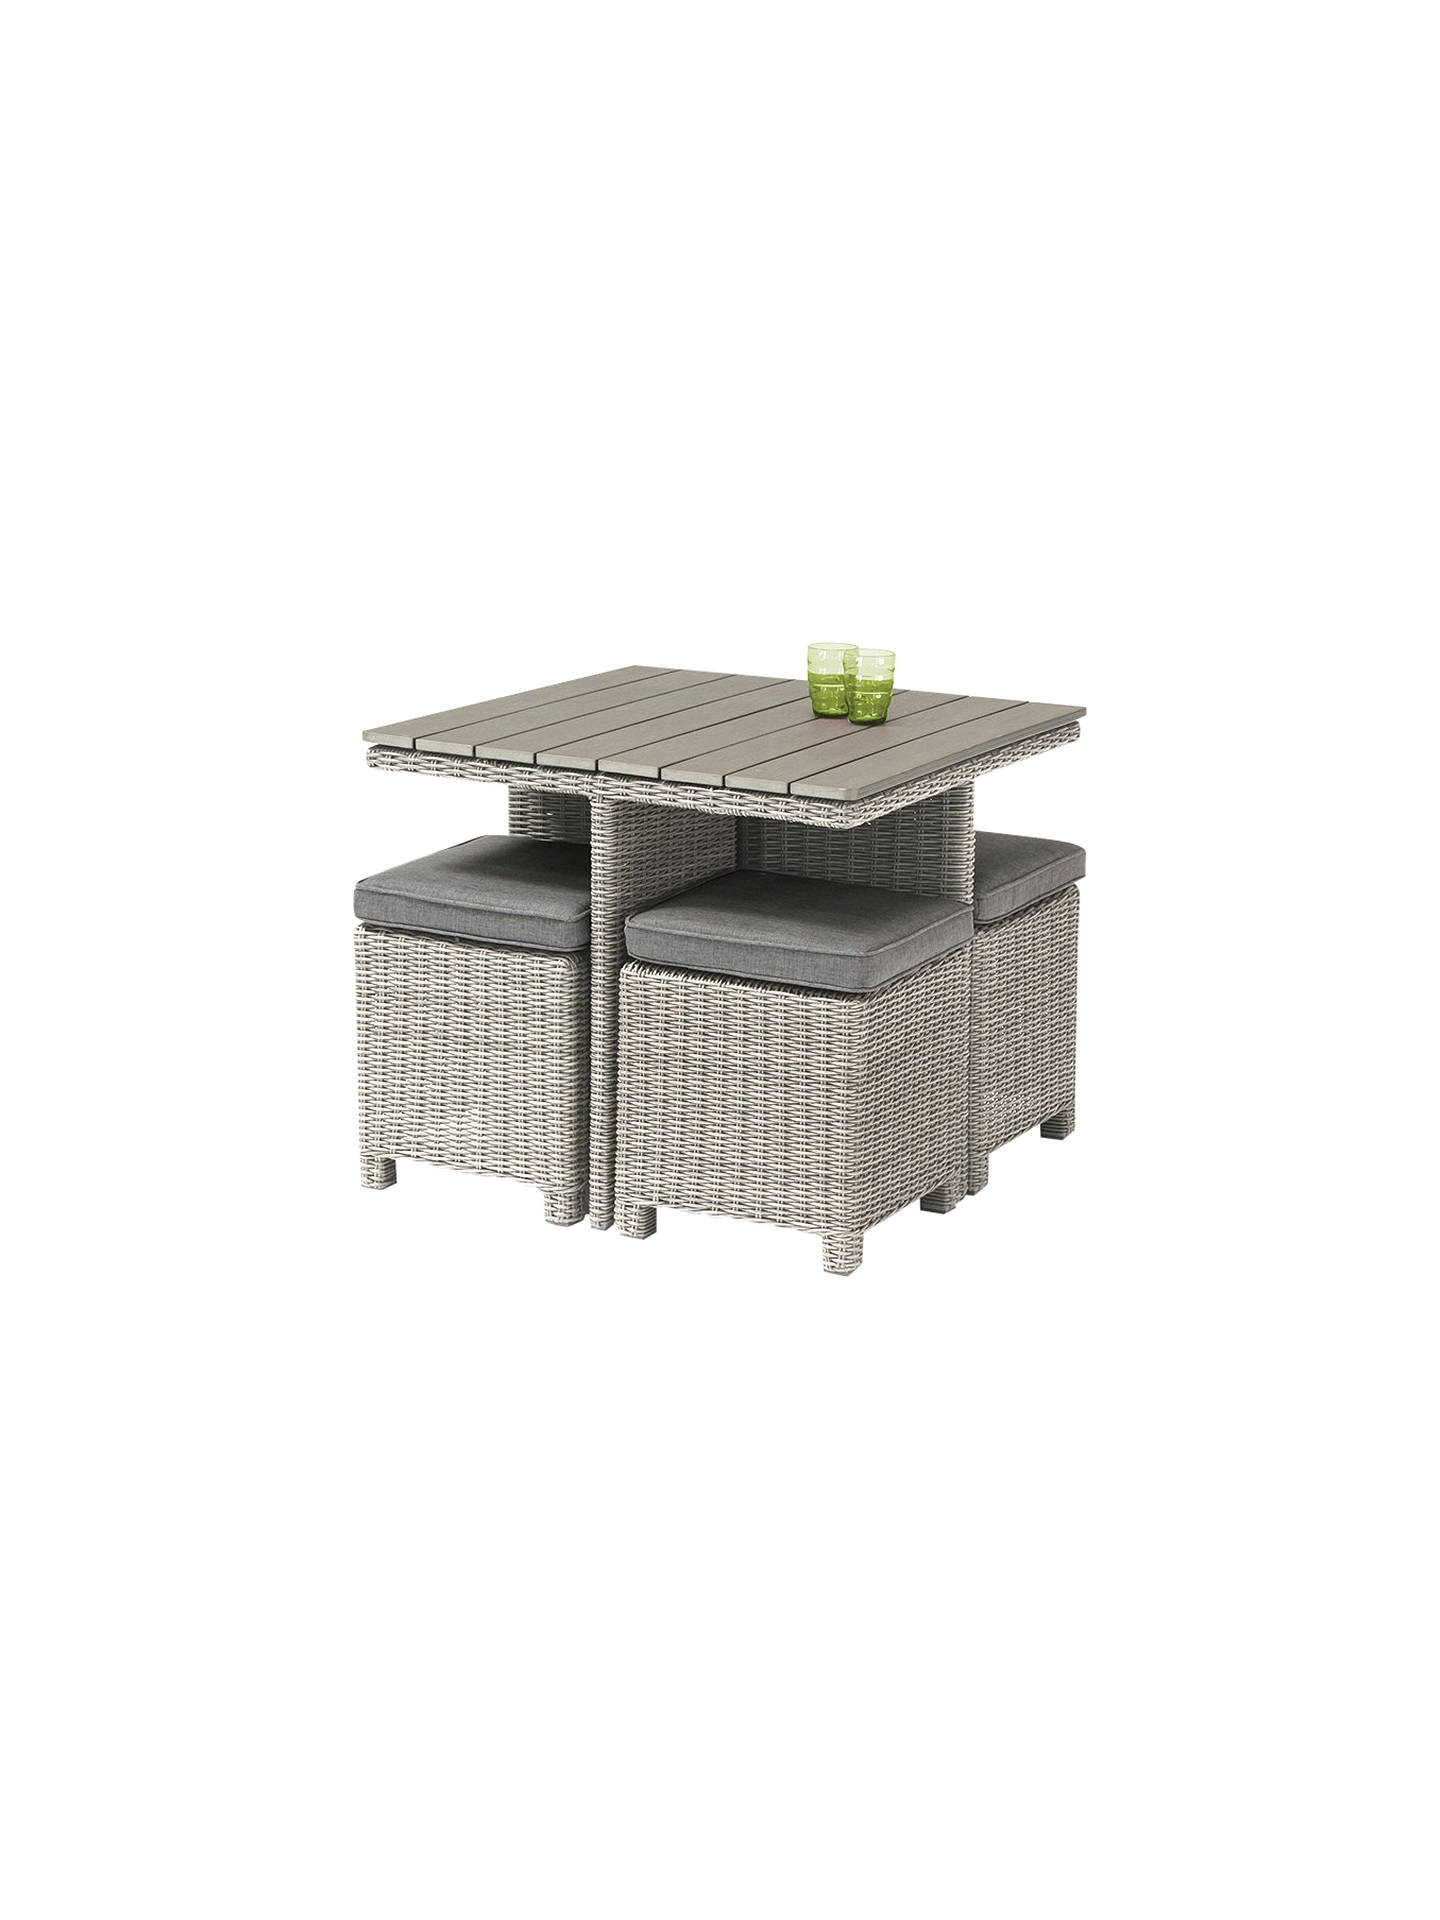 Kettler Palma 4 Seater Garden Cube Table And Chairs Set At